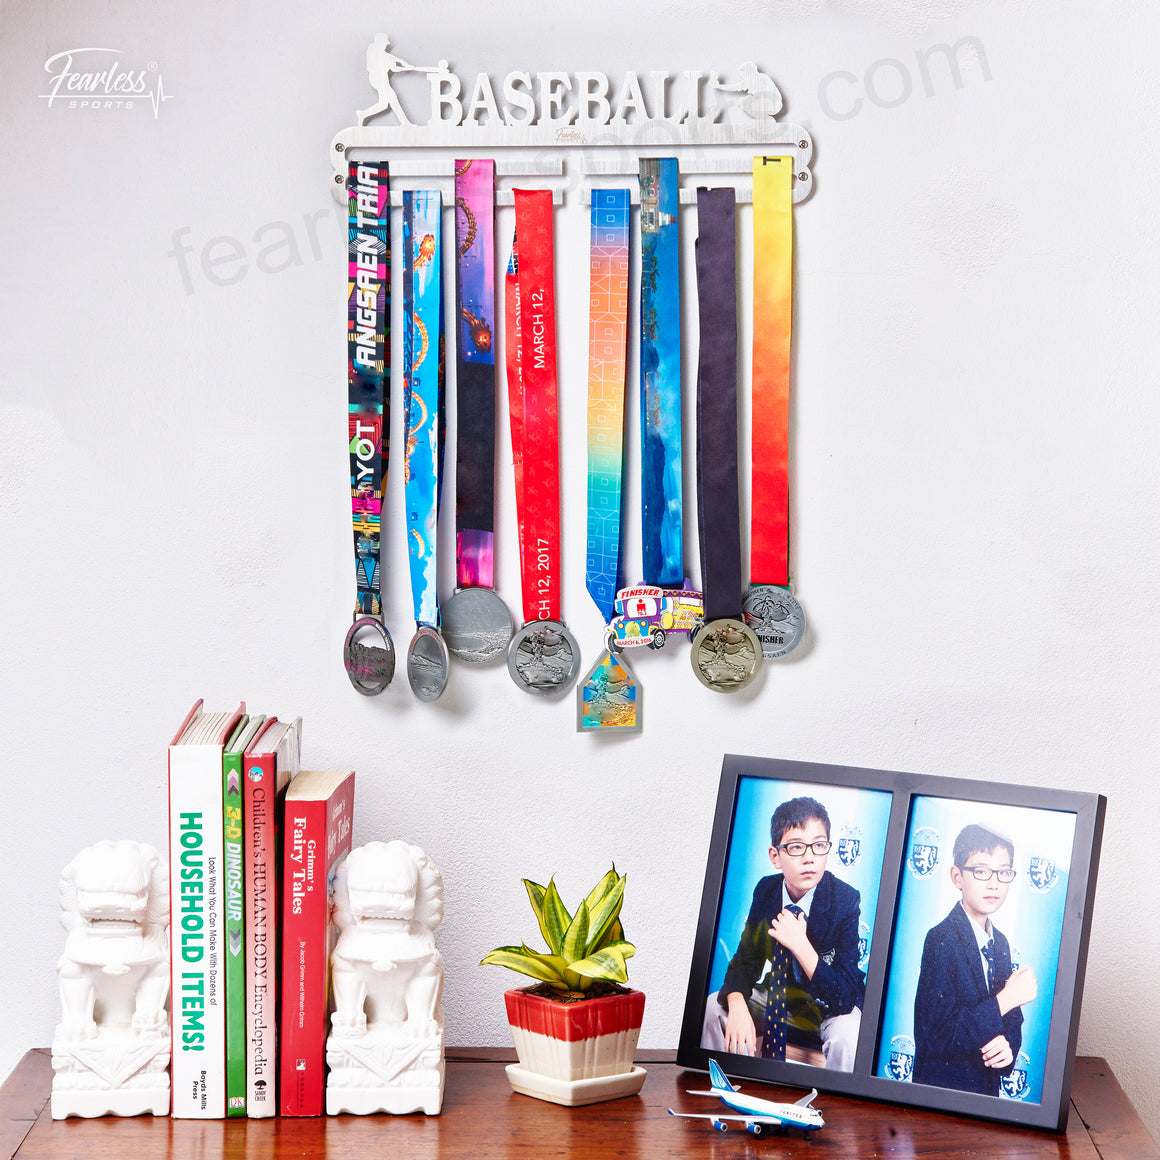 Baseball Stainless Steel Sport Medal Display Hanger Medal Organizer ITM./ART.5189 - Fearless Sports